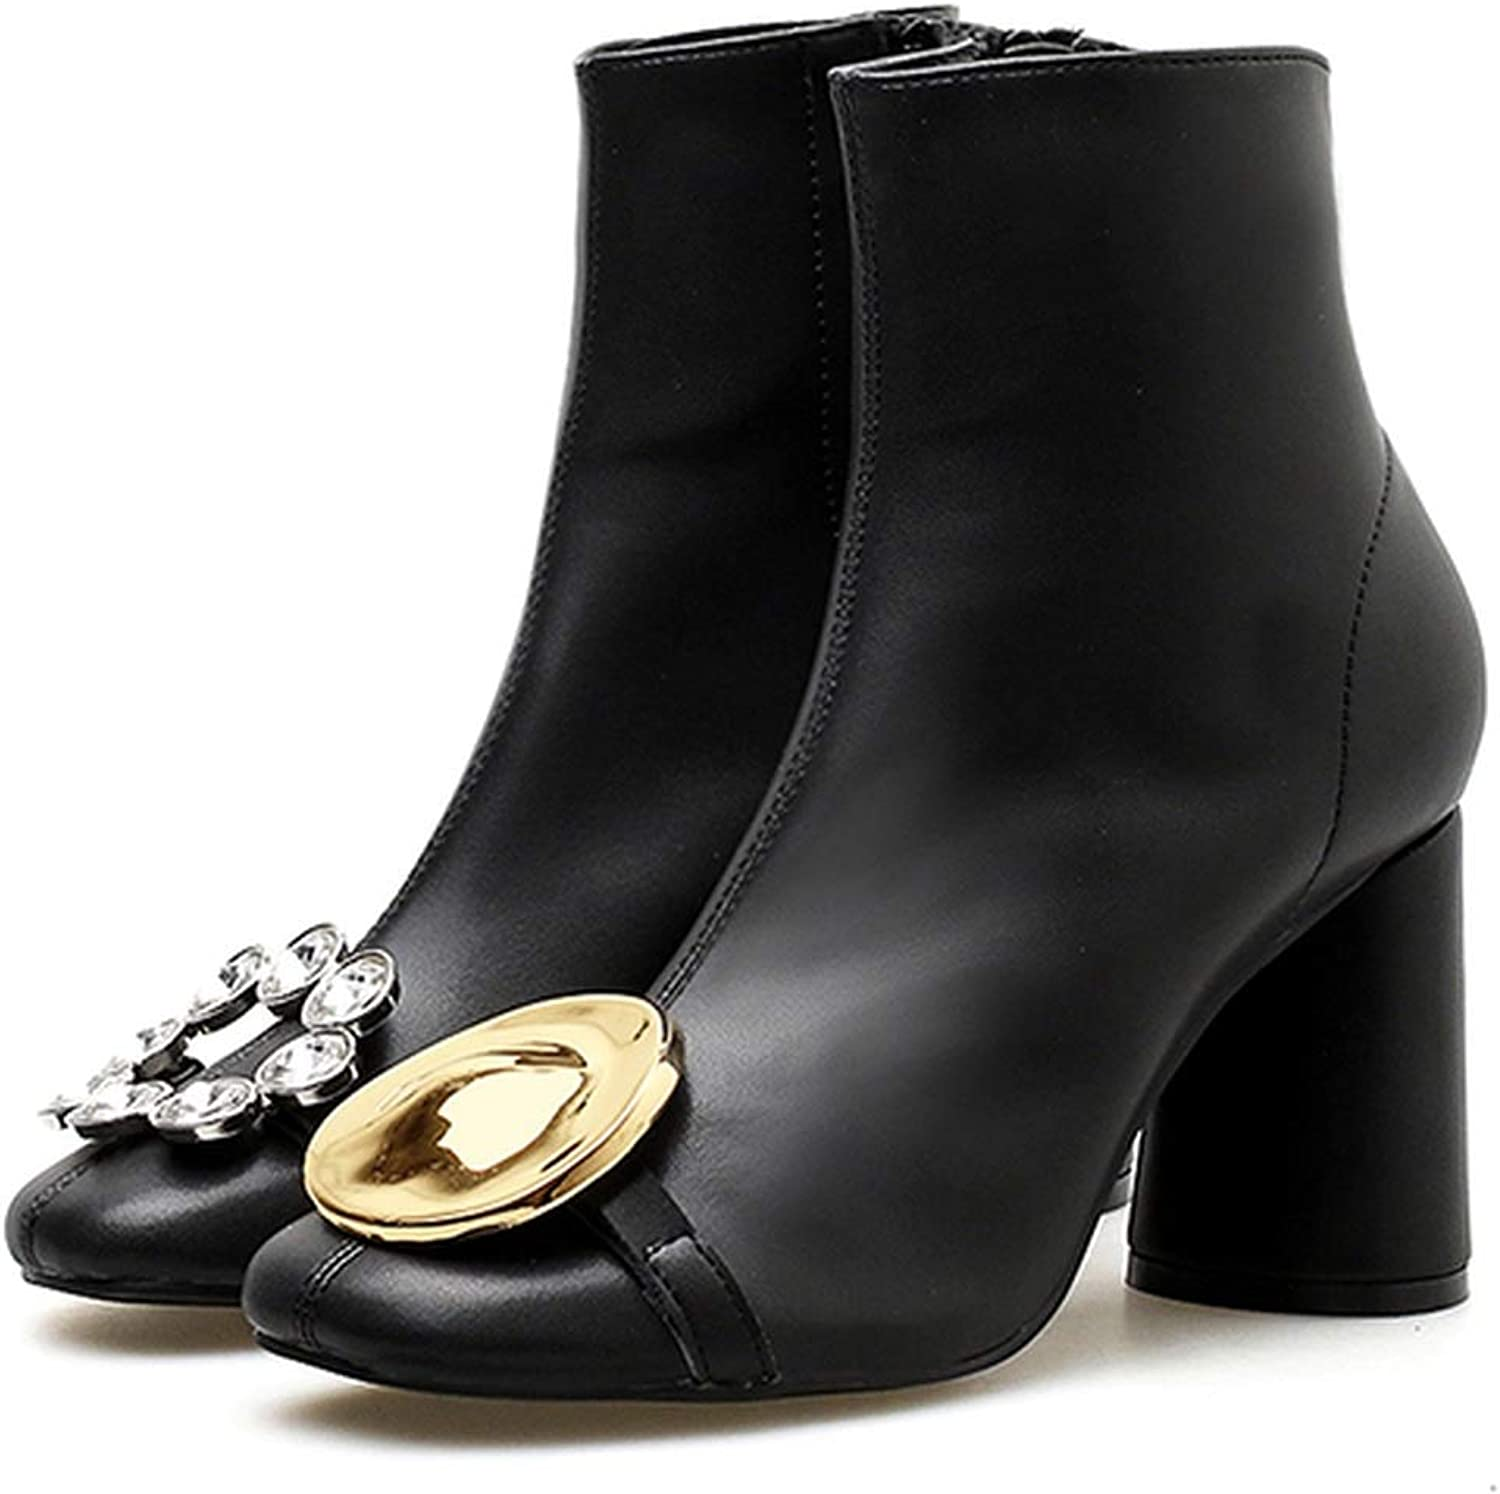 9d886a623de5e Nice Style Ankle Boots for Women Crystal Rhinestone Metal Decor ...